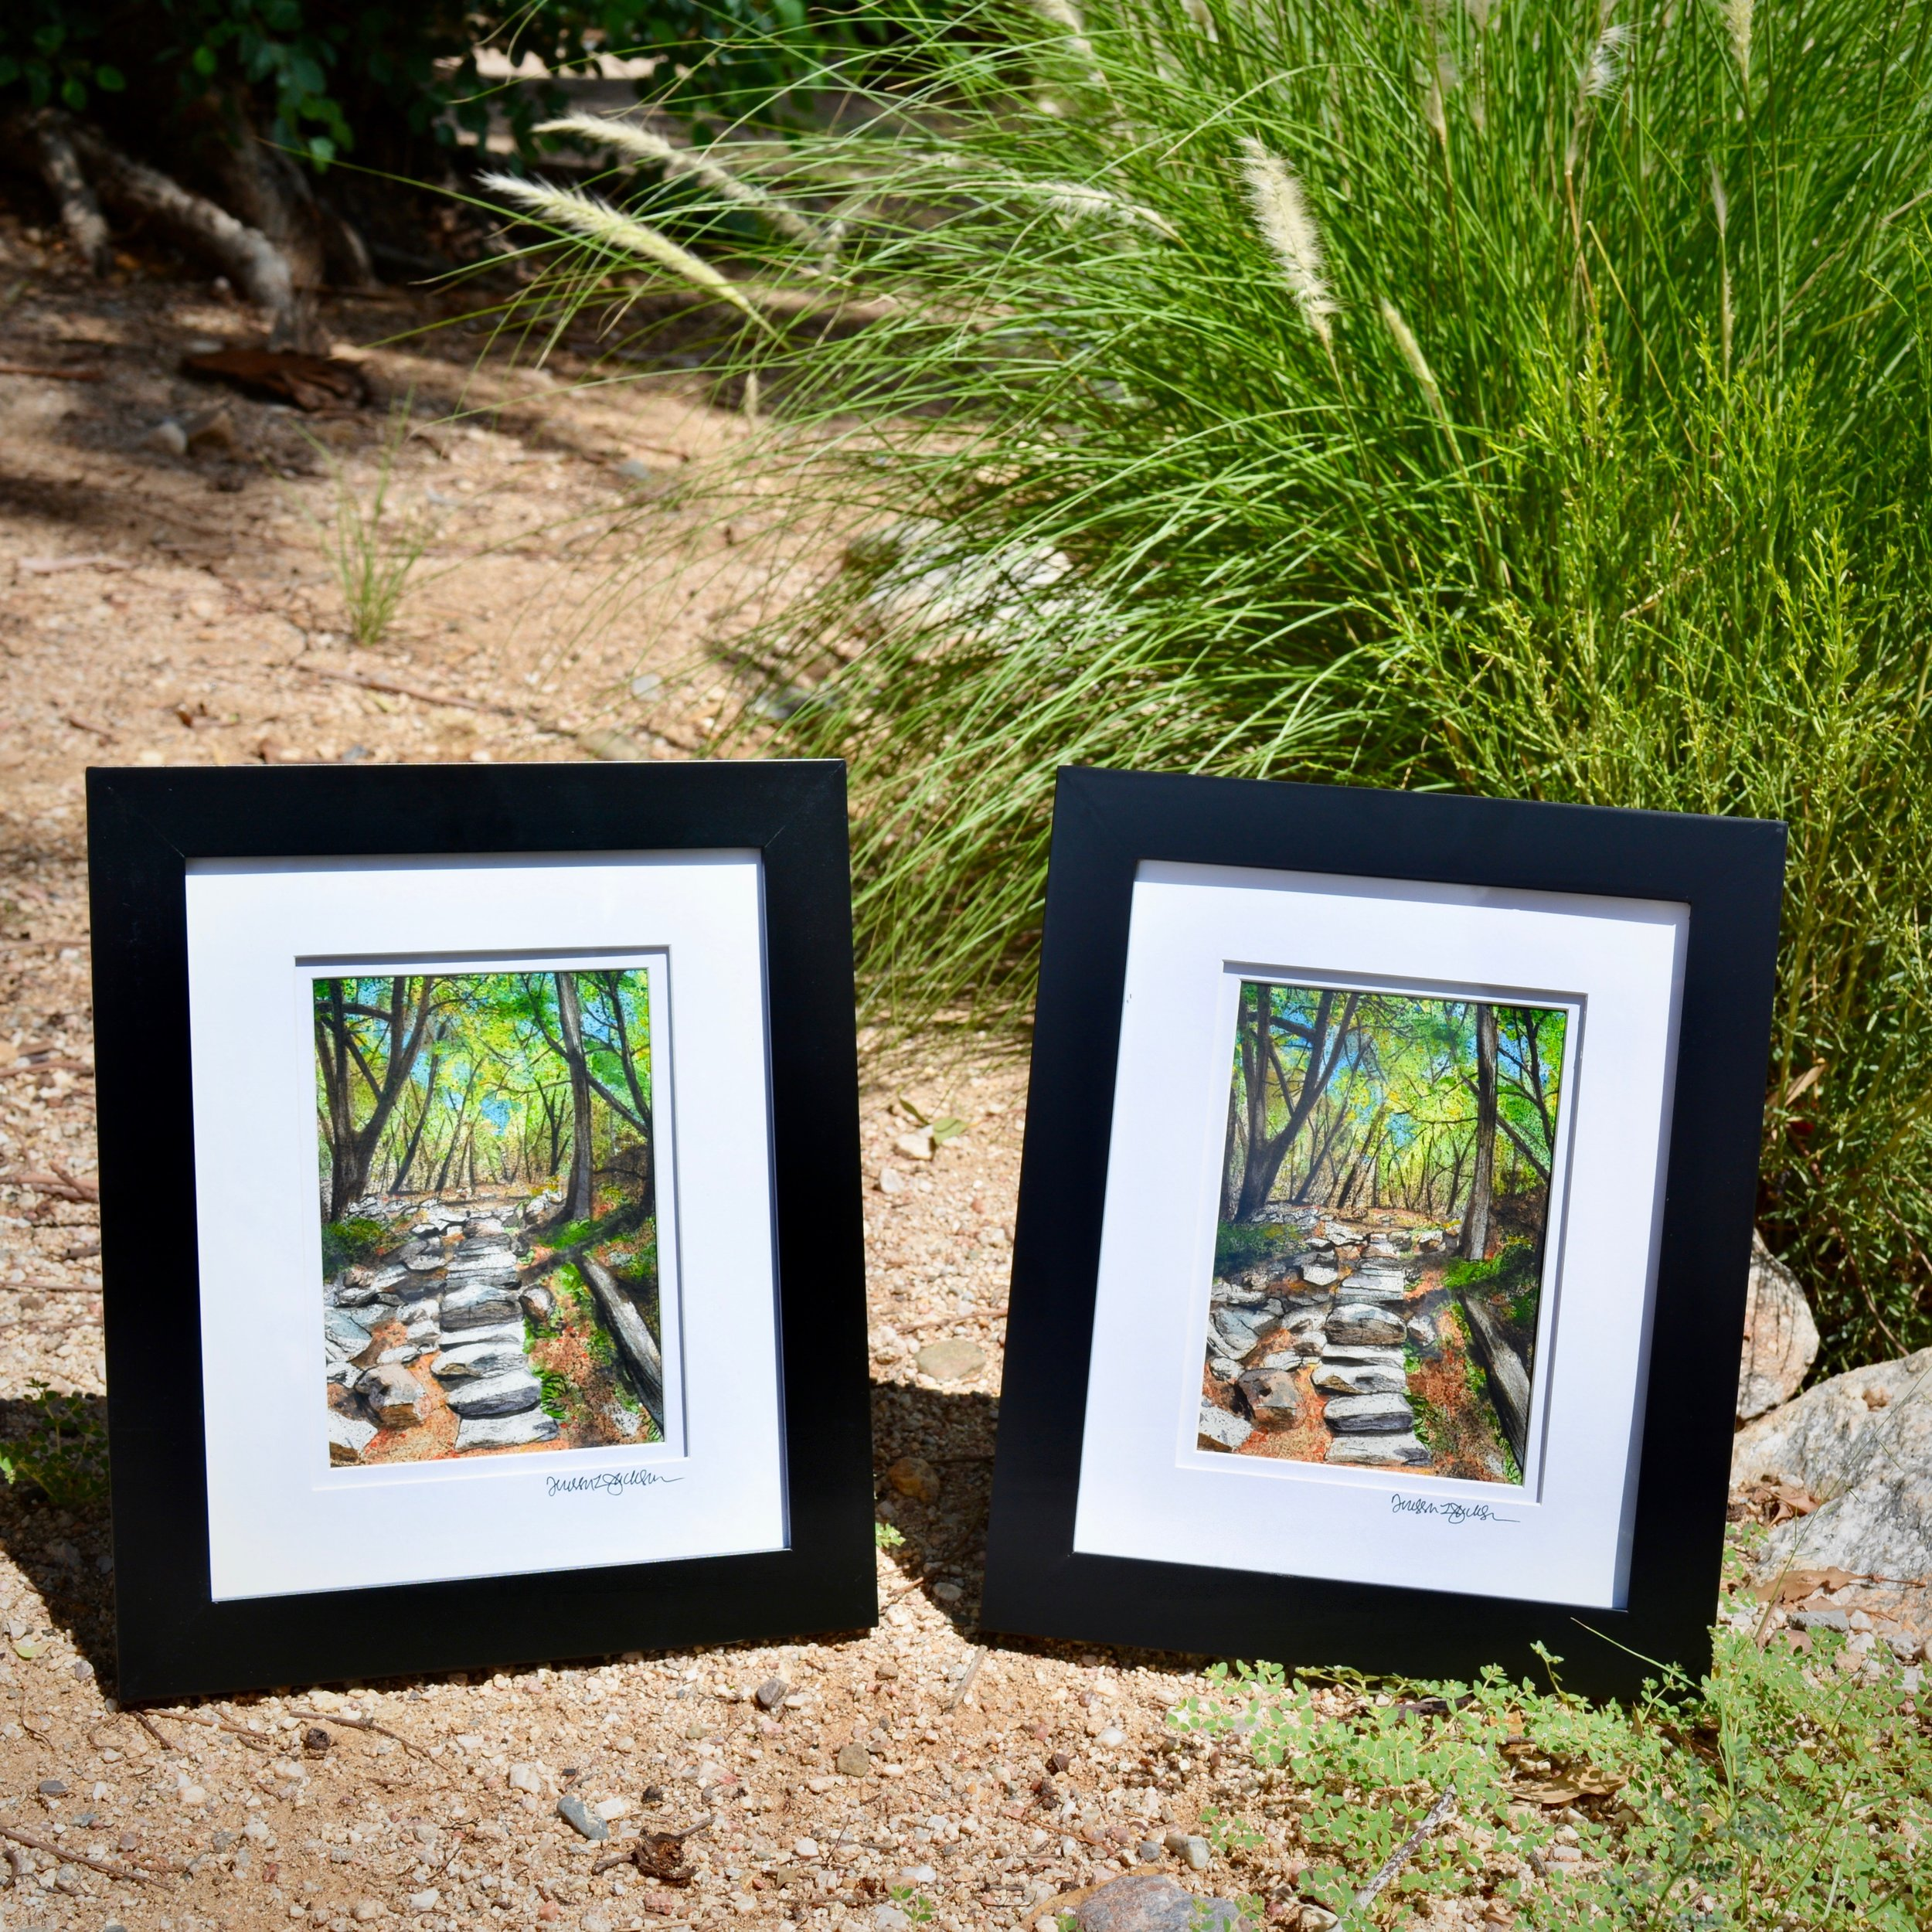 """The Land of Stories"" I & II, all framed up and ready to go to their new home"